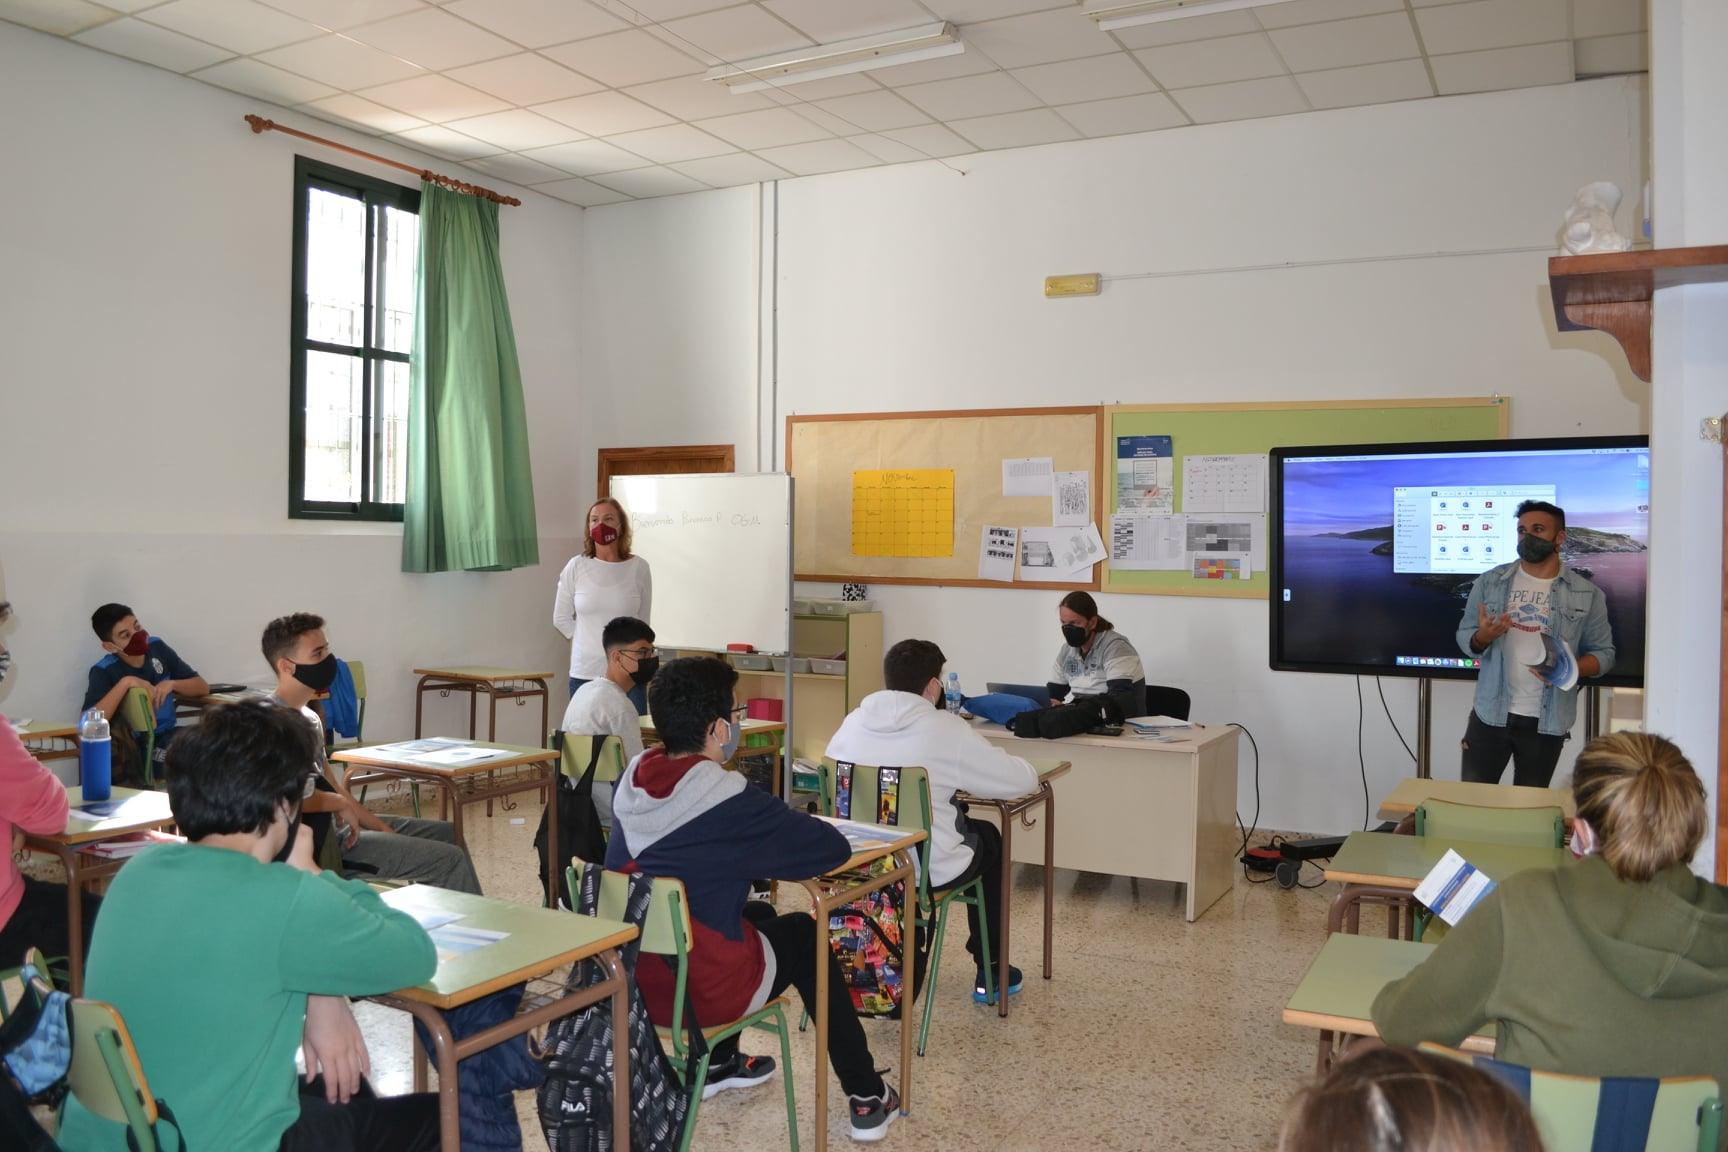 Presenting career paths to students in Spain